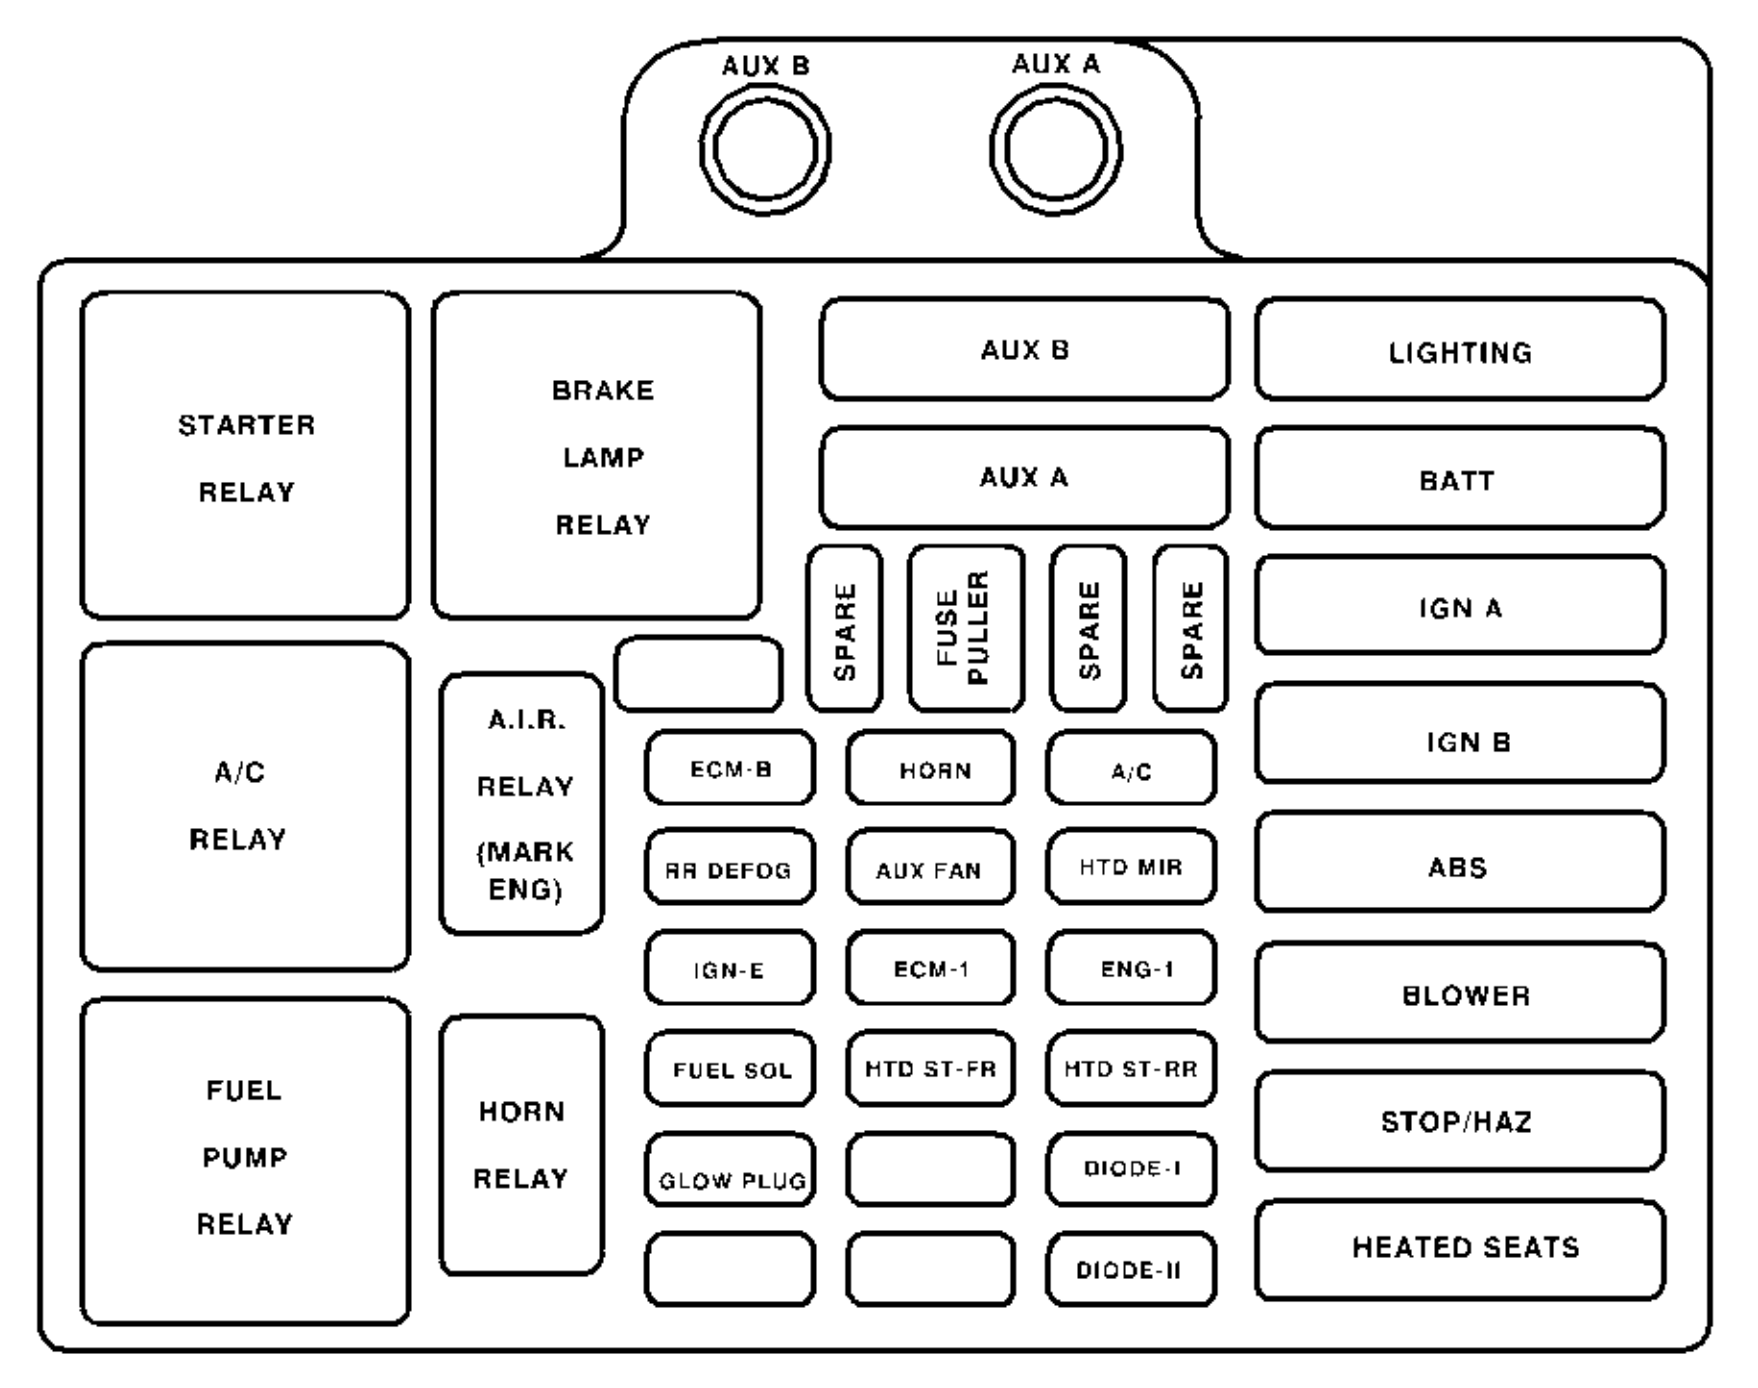 hight resolution of fuse diagram 1997 chevy wiring diagram expert fuse box 1997 chevy blazer fuse diagram 1997 chevy